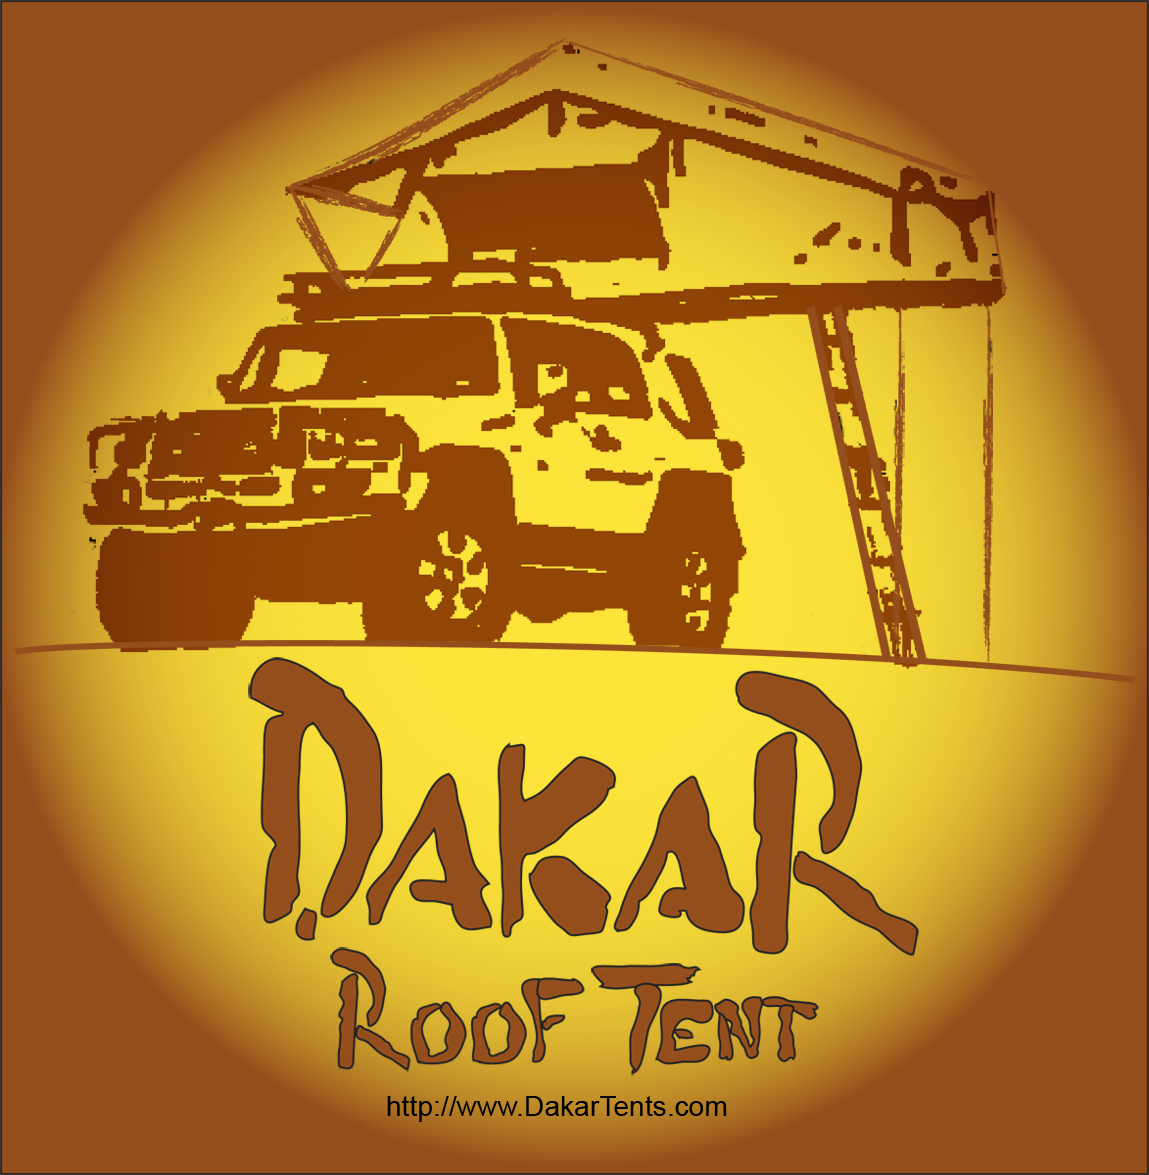 Logo Design by LLP7 - Entry No. 28 in the Logo Design Contest Dakar Roof Tents.